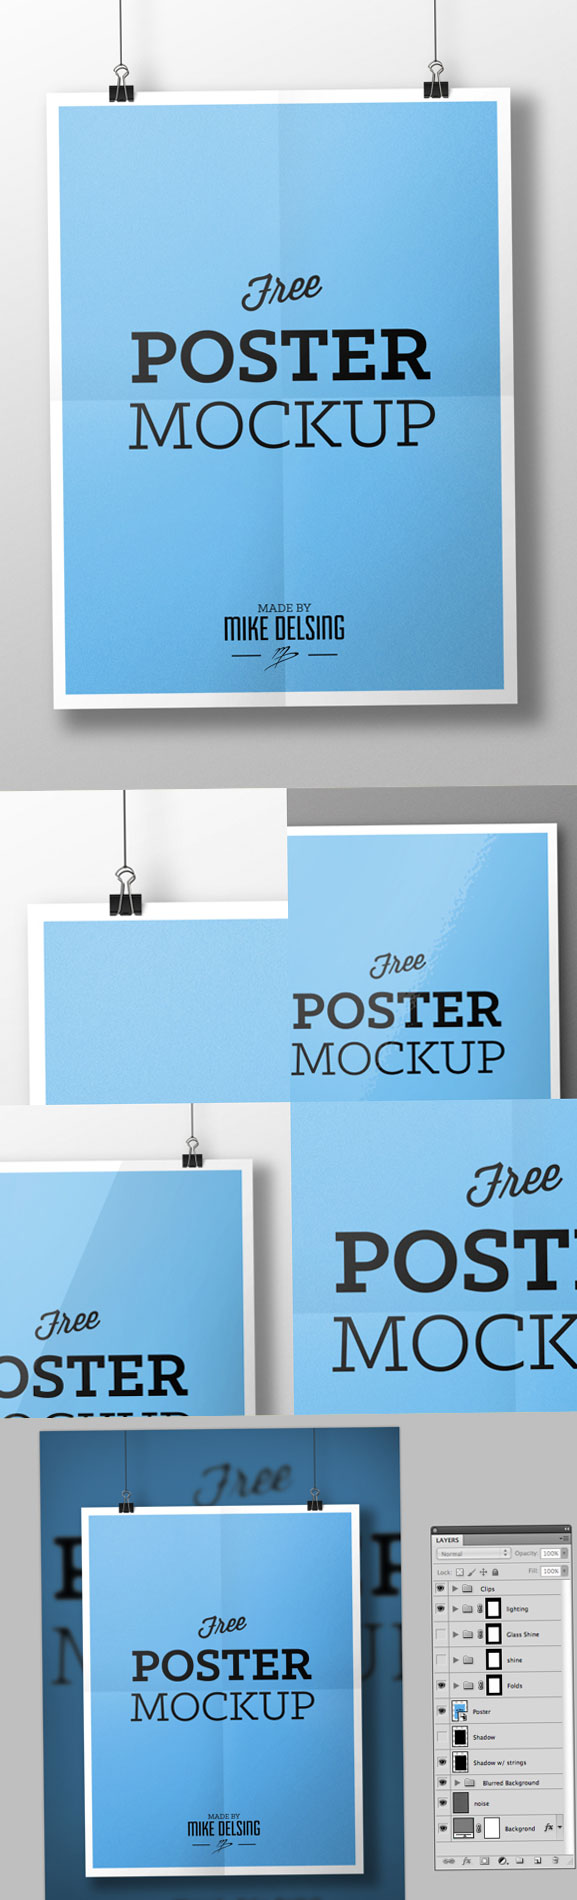 Psd poster mockup photoshop psd for What is a psd template